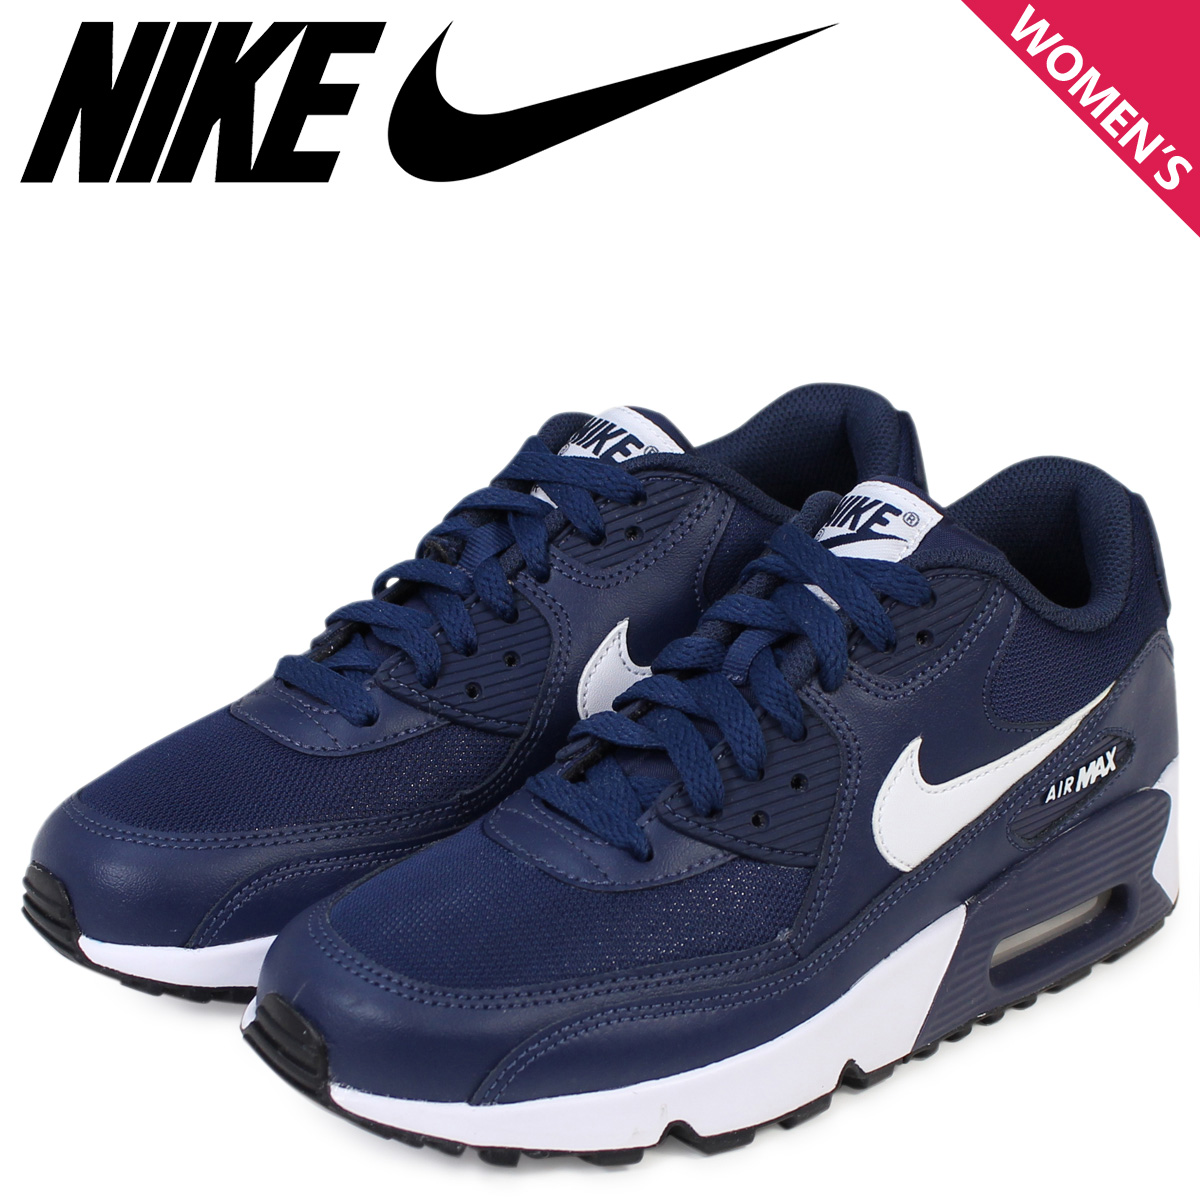 Nike Air Max Womens NIKE sneakers AIR MAX 90 MESH GS Air Max 833418 400 shoes Navy [11 26 new in stock]